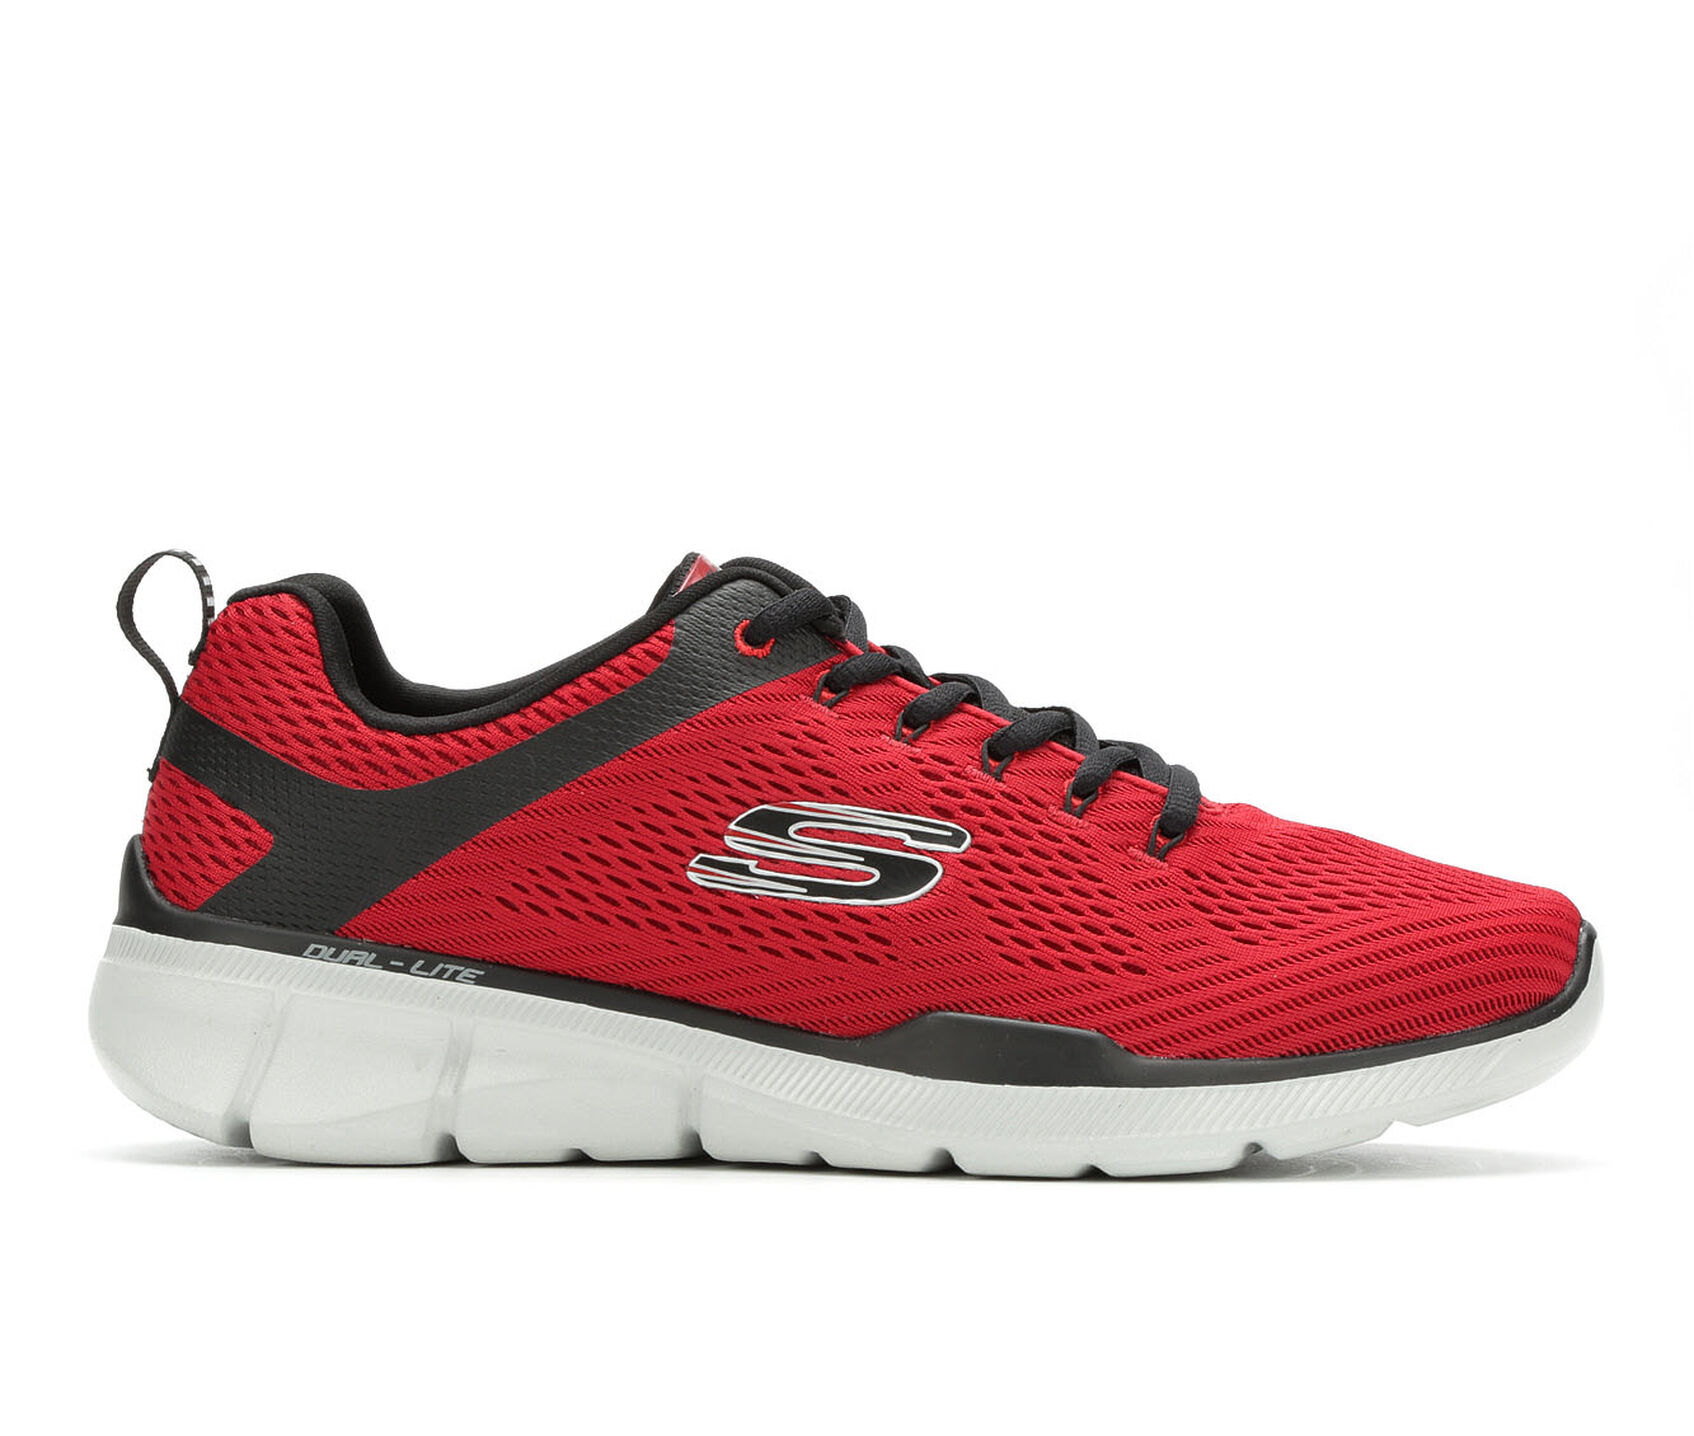 ... Skechers 52927 Equalizer 3.0 Running Shoes. Carousel Controls 2bbdfa1374d14